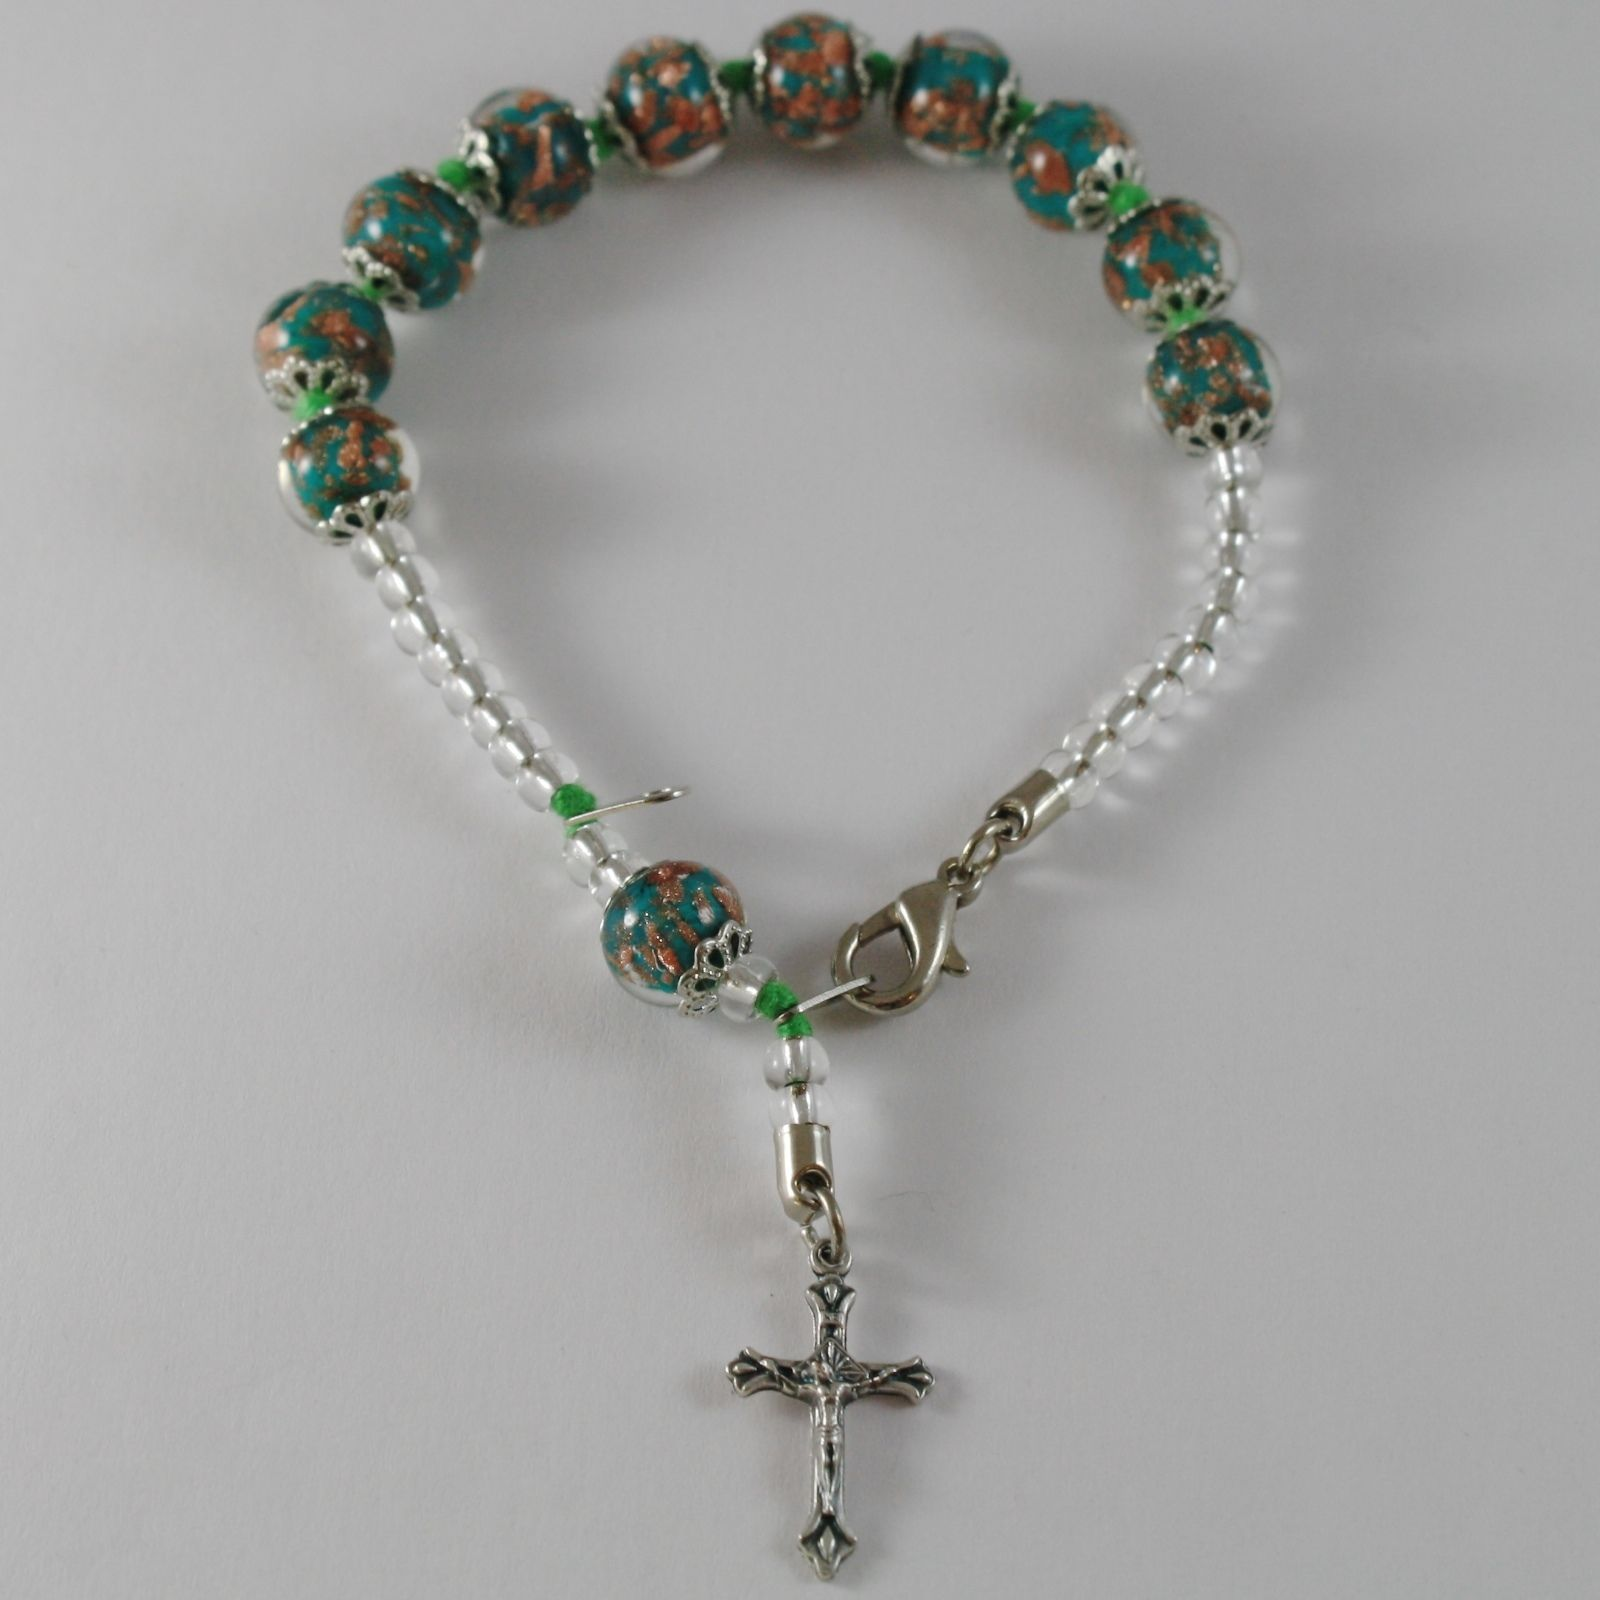 ANTICA MURRINA VENEZIA ROSARY BRACELET WITH JESUS CROSS GREEN SPHERES BALLS BALL